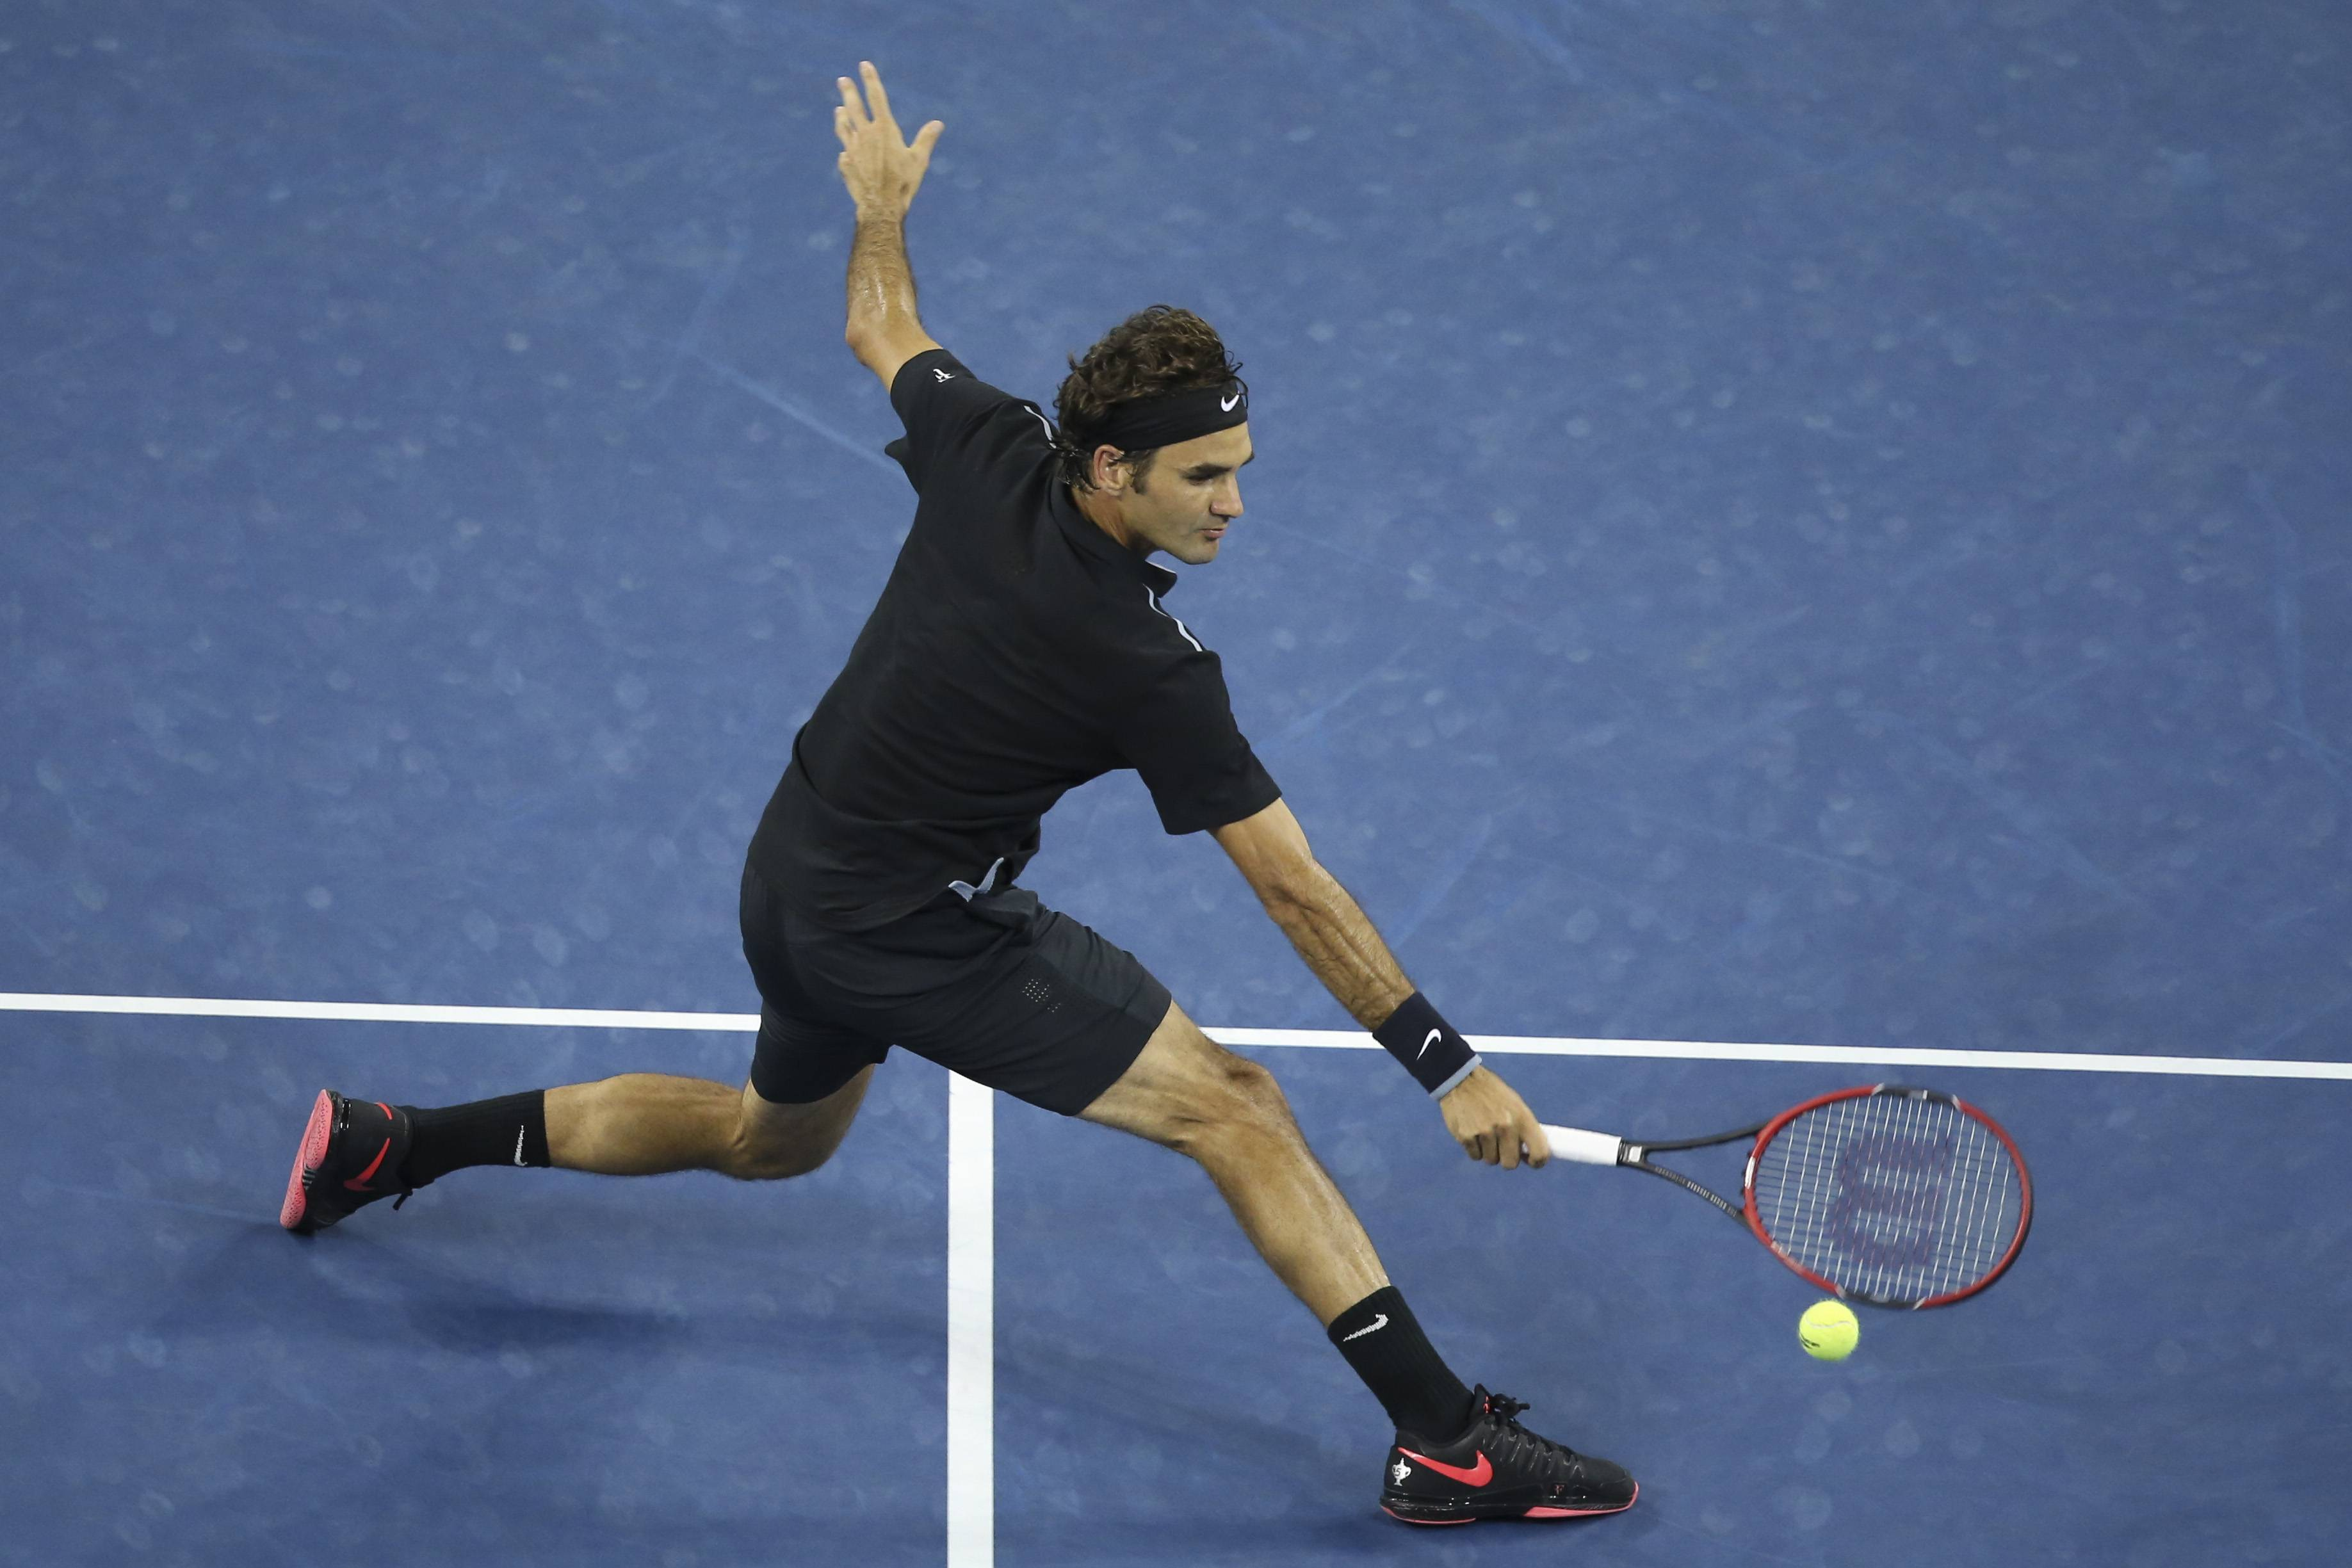 Roger Federer, of Switzerland, hits a backhand to Gael Monfils, of France, during the quarterfinals of the U.S. Open tennis tournament, Thursday, Sept. 4, 2014, in New York. (AP Photo/John Minchillo)